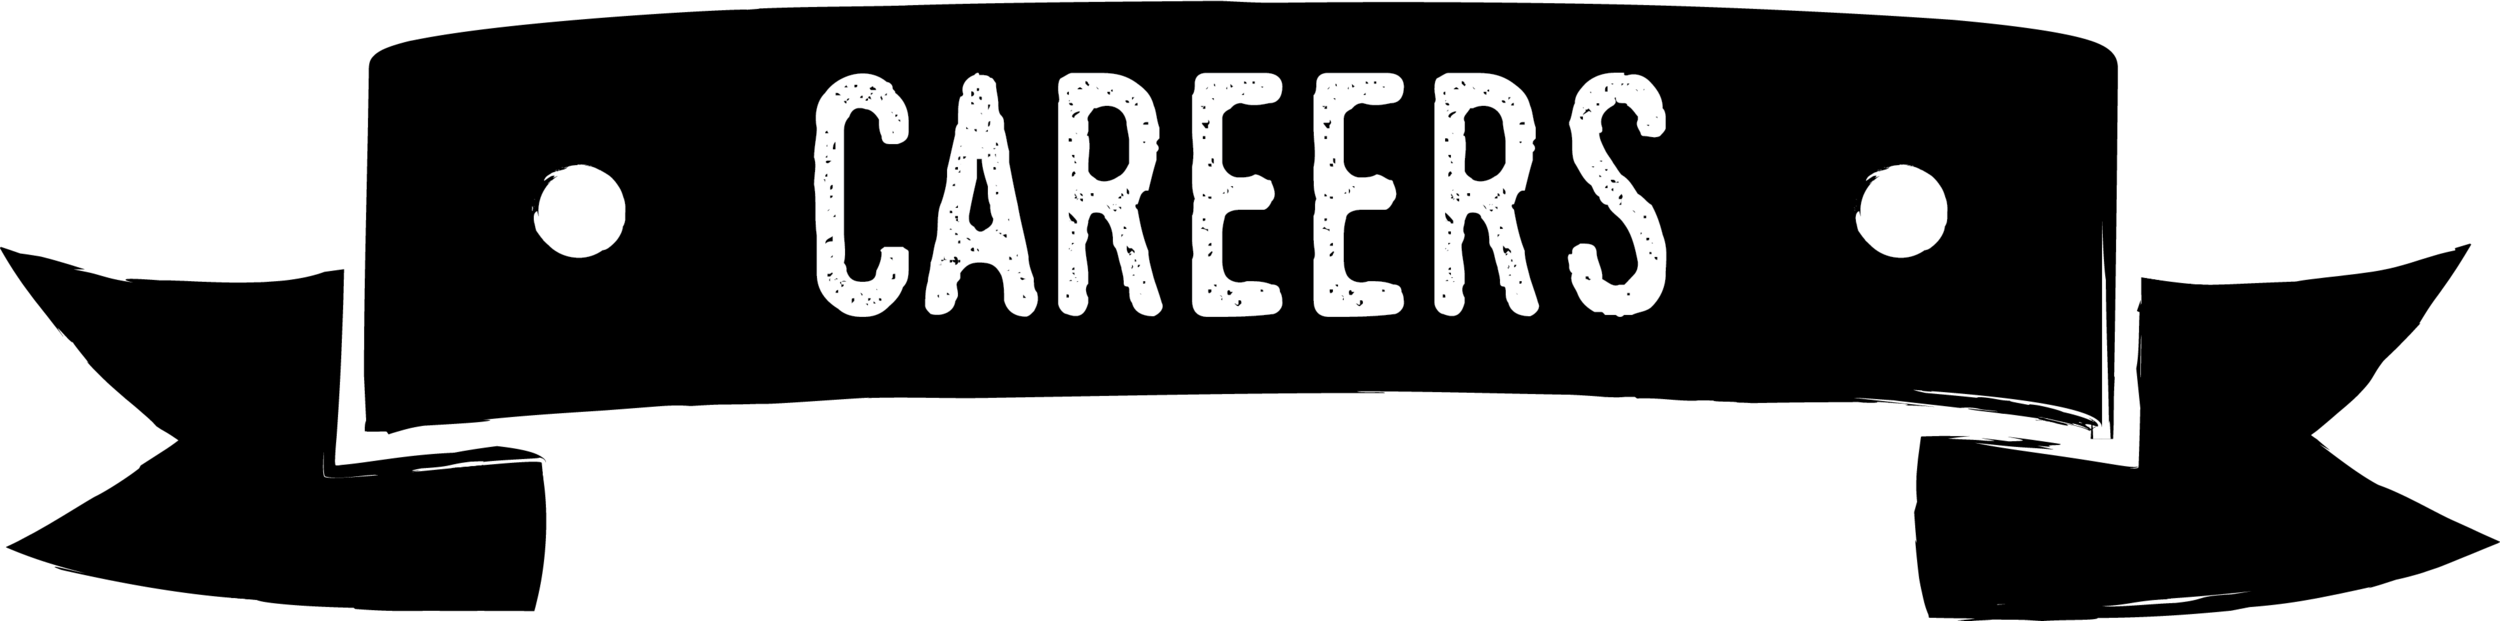 Careers Banner.png